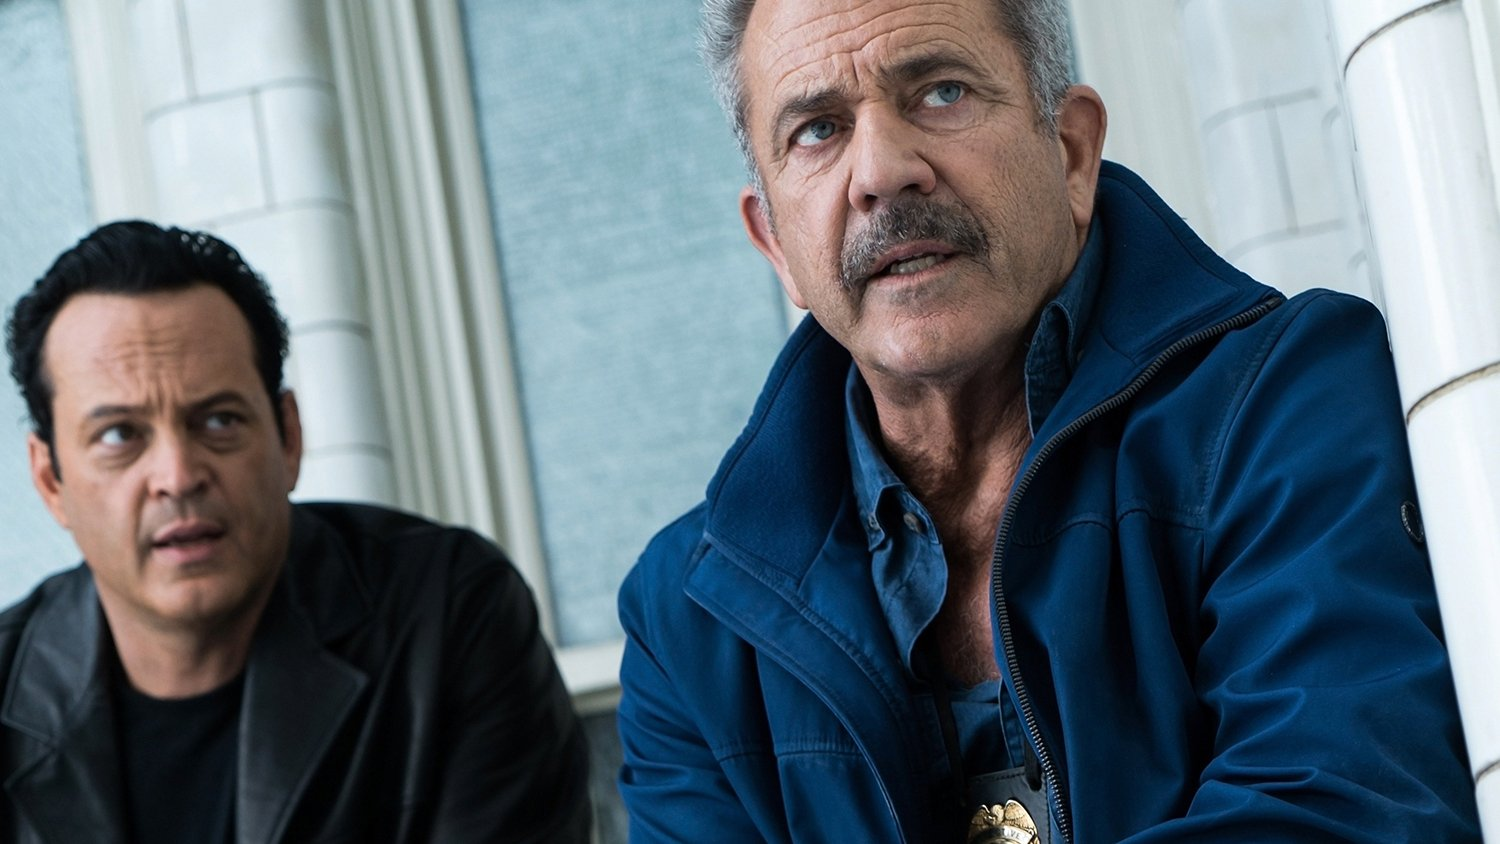 mel gibson, dragged across concrete, best films 2019